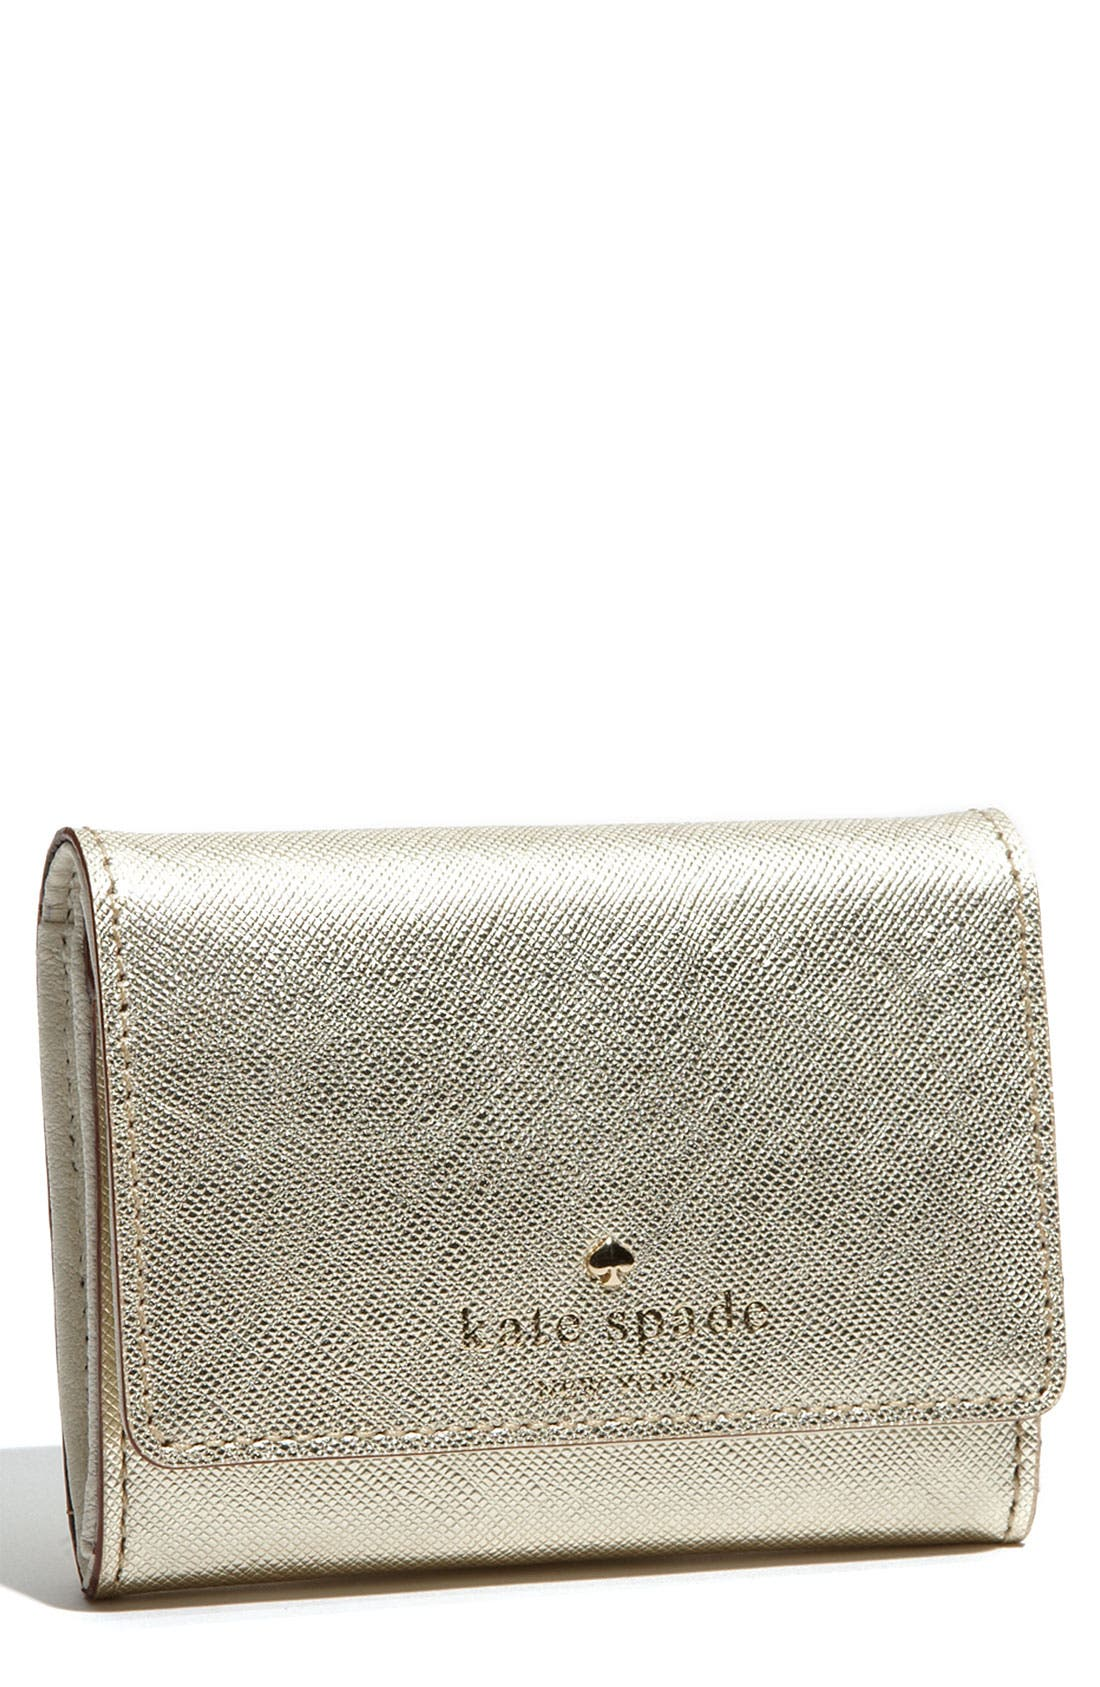 Main Image - kate spade new york 'mikas pond - darla' french wallet